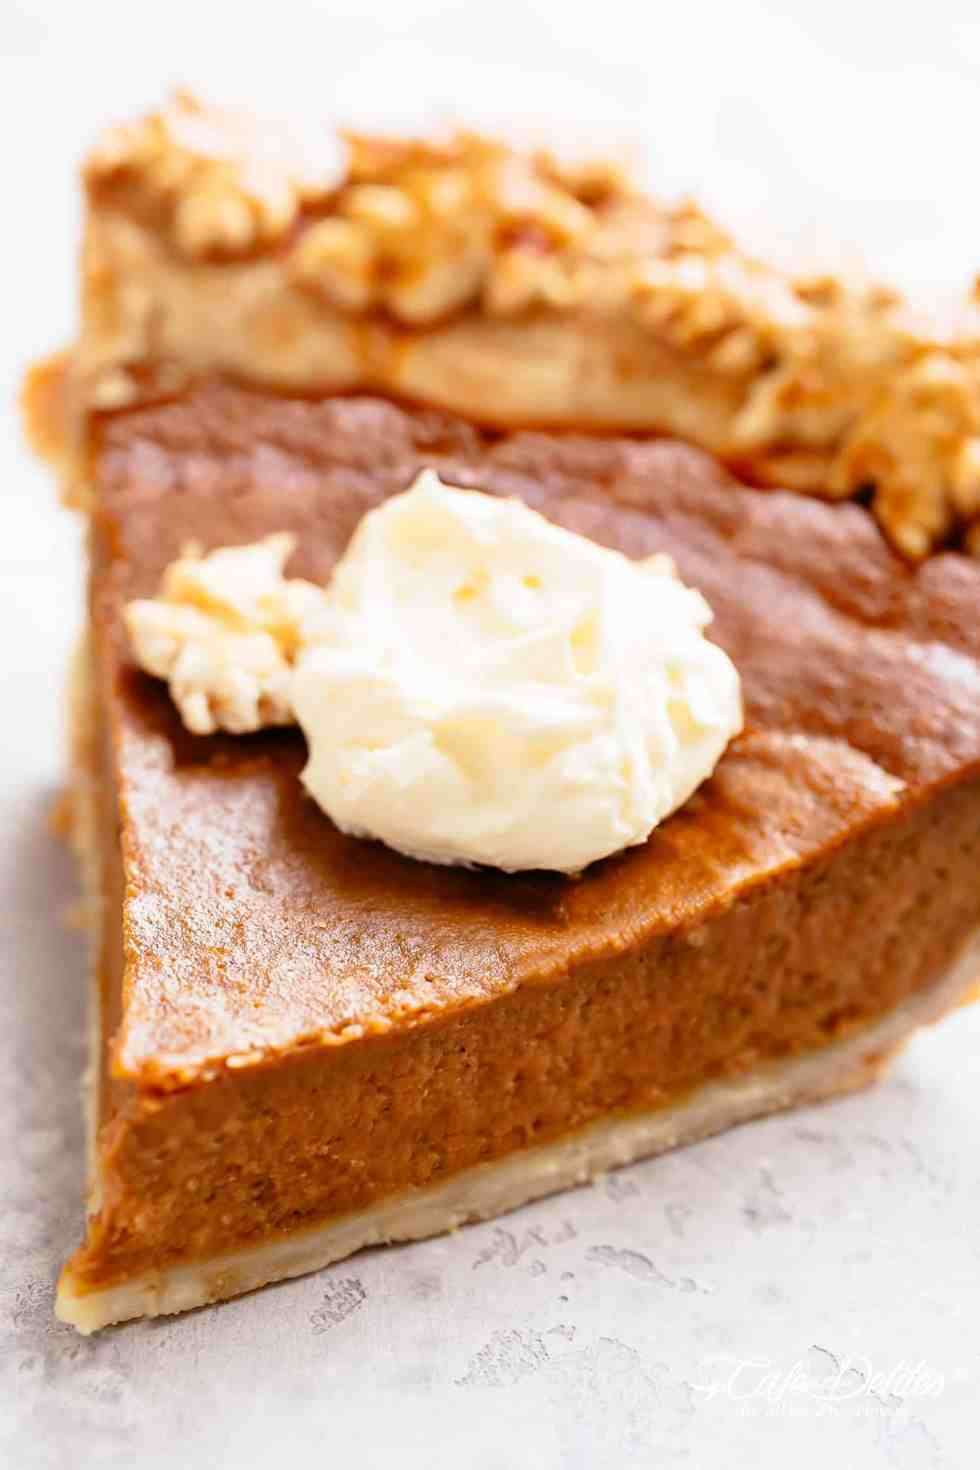 A slice of Pumpkin Pie with whipped cream!